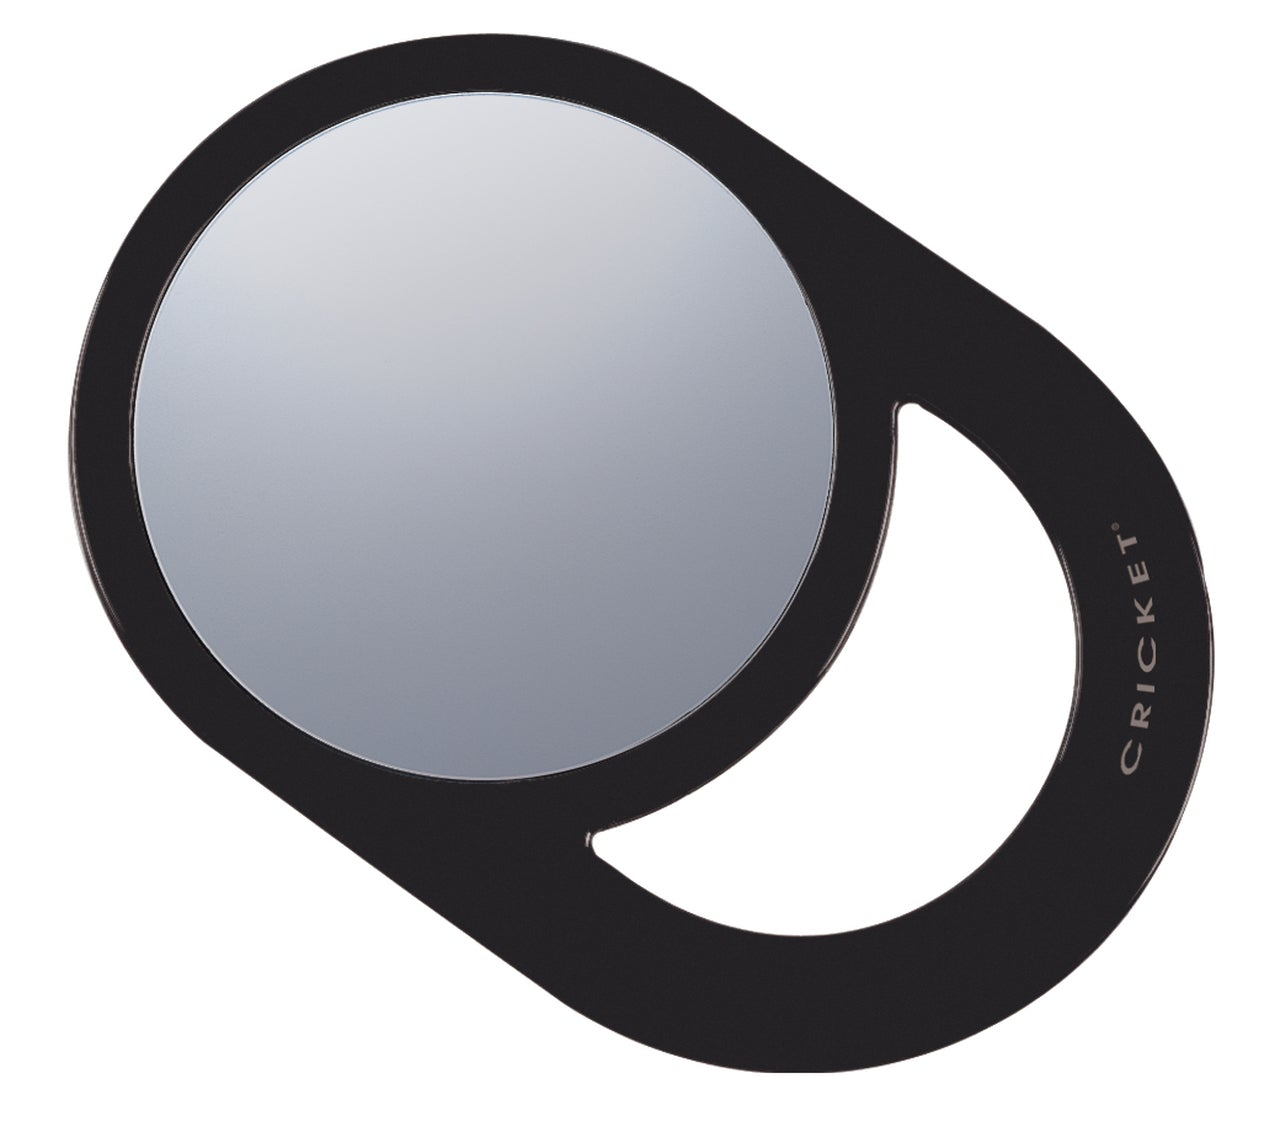 Cricket Oval Styling Mirror Black